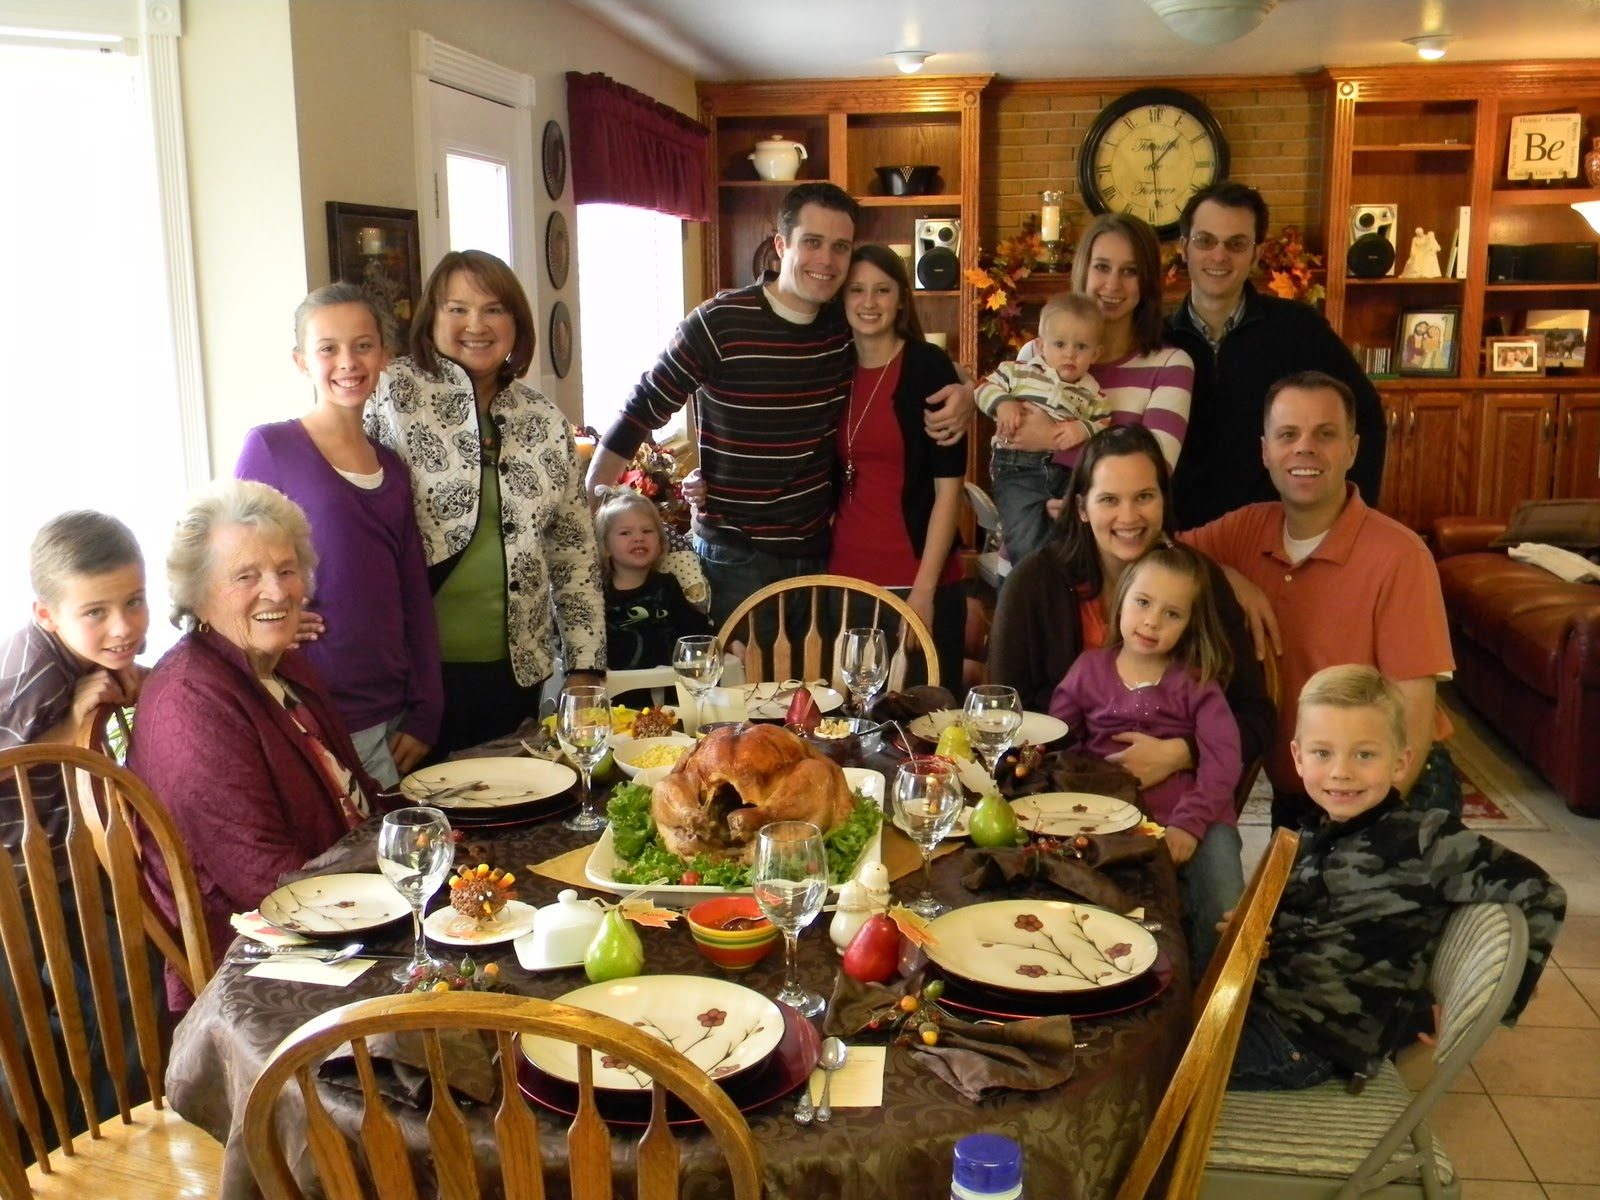 family-gathering-thanksgiving.jpg